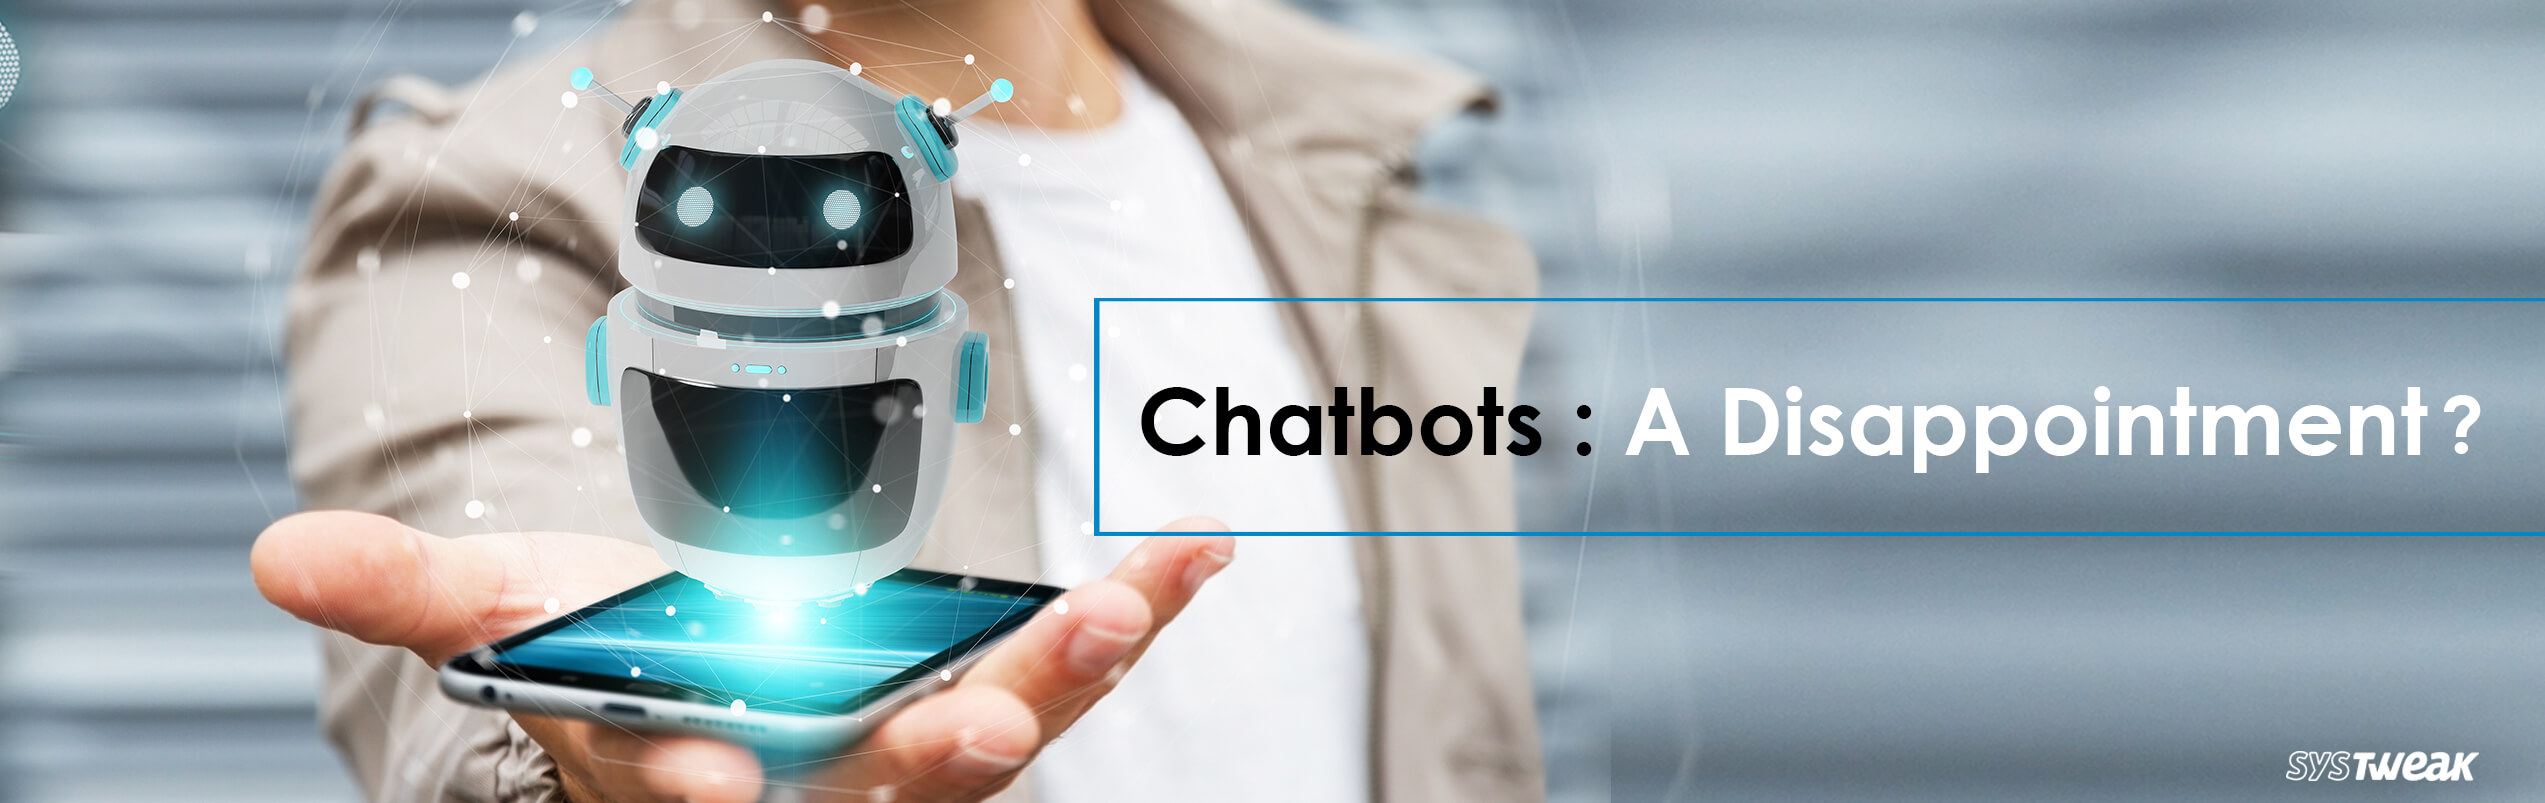 Chatbots: Why Are They Continually Failing Us?